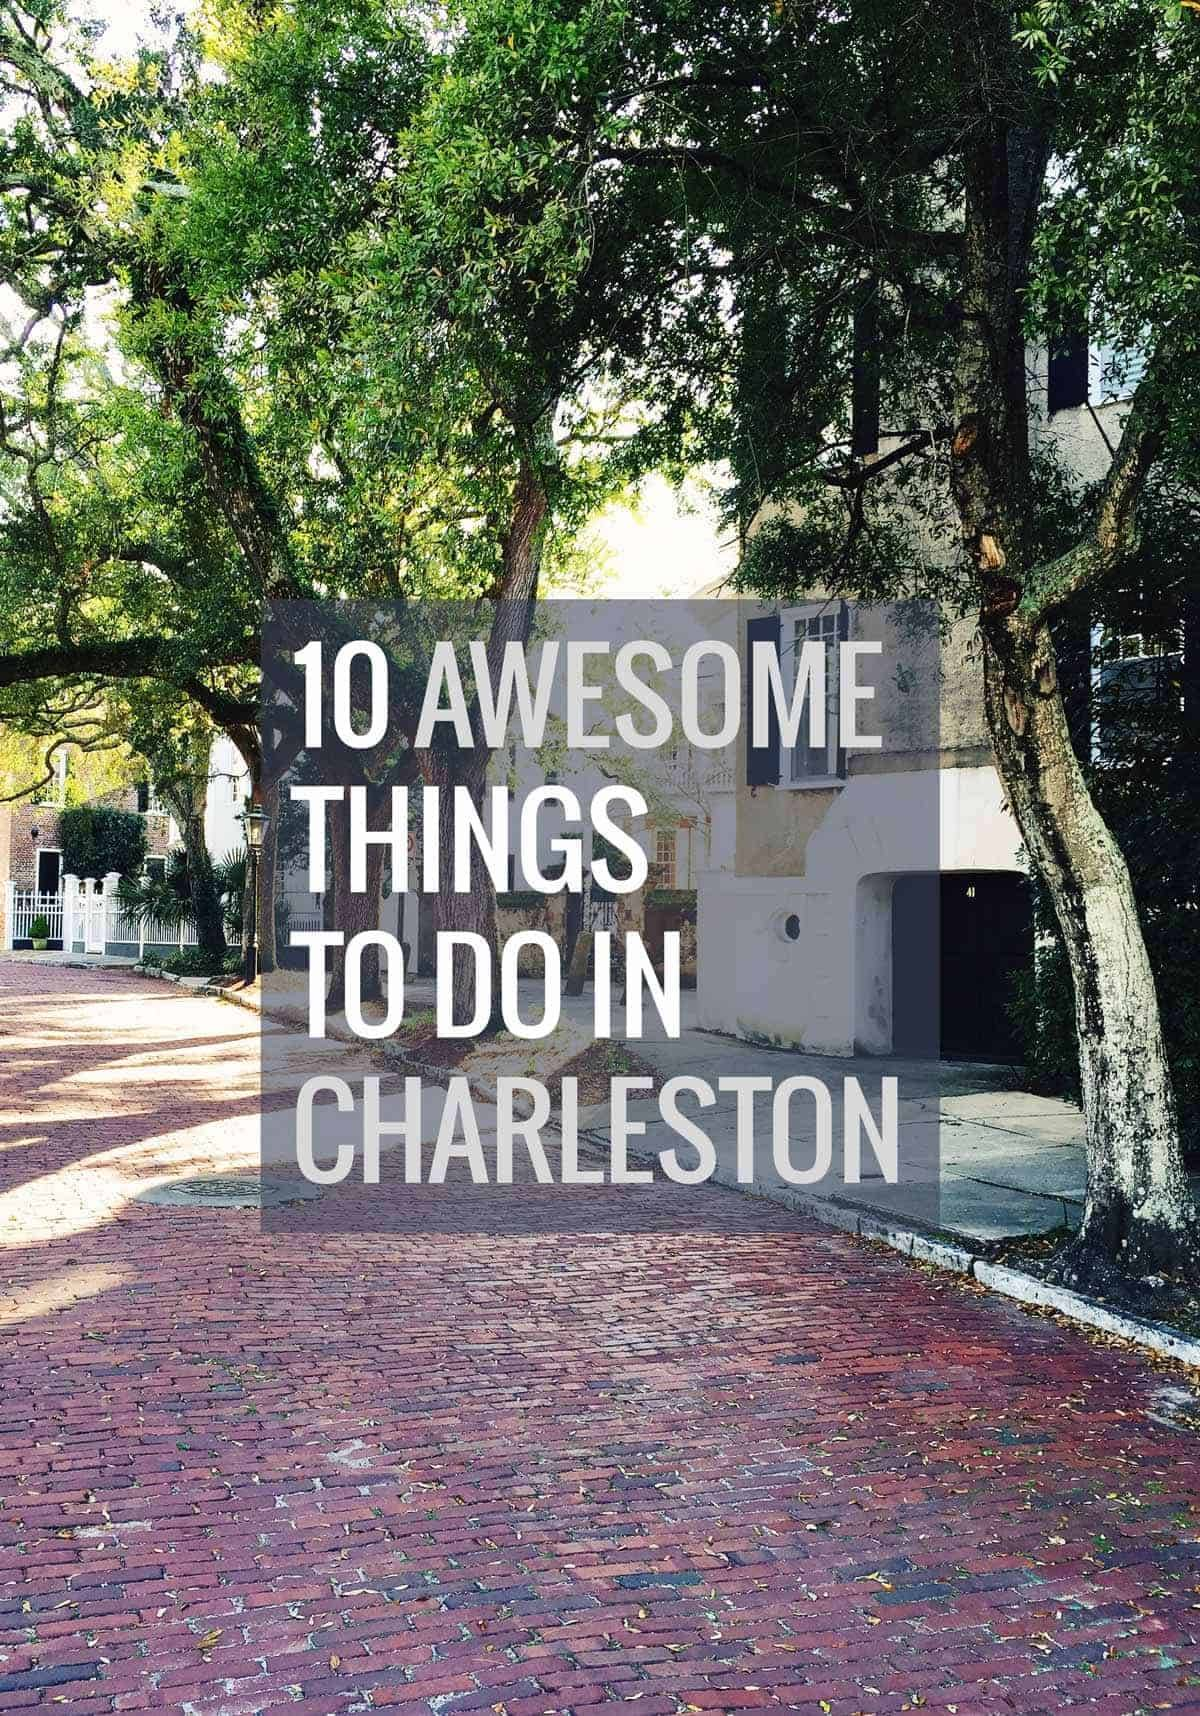 Ten Awesome Things to do in Charleston, North Carolina with a photo of the street.